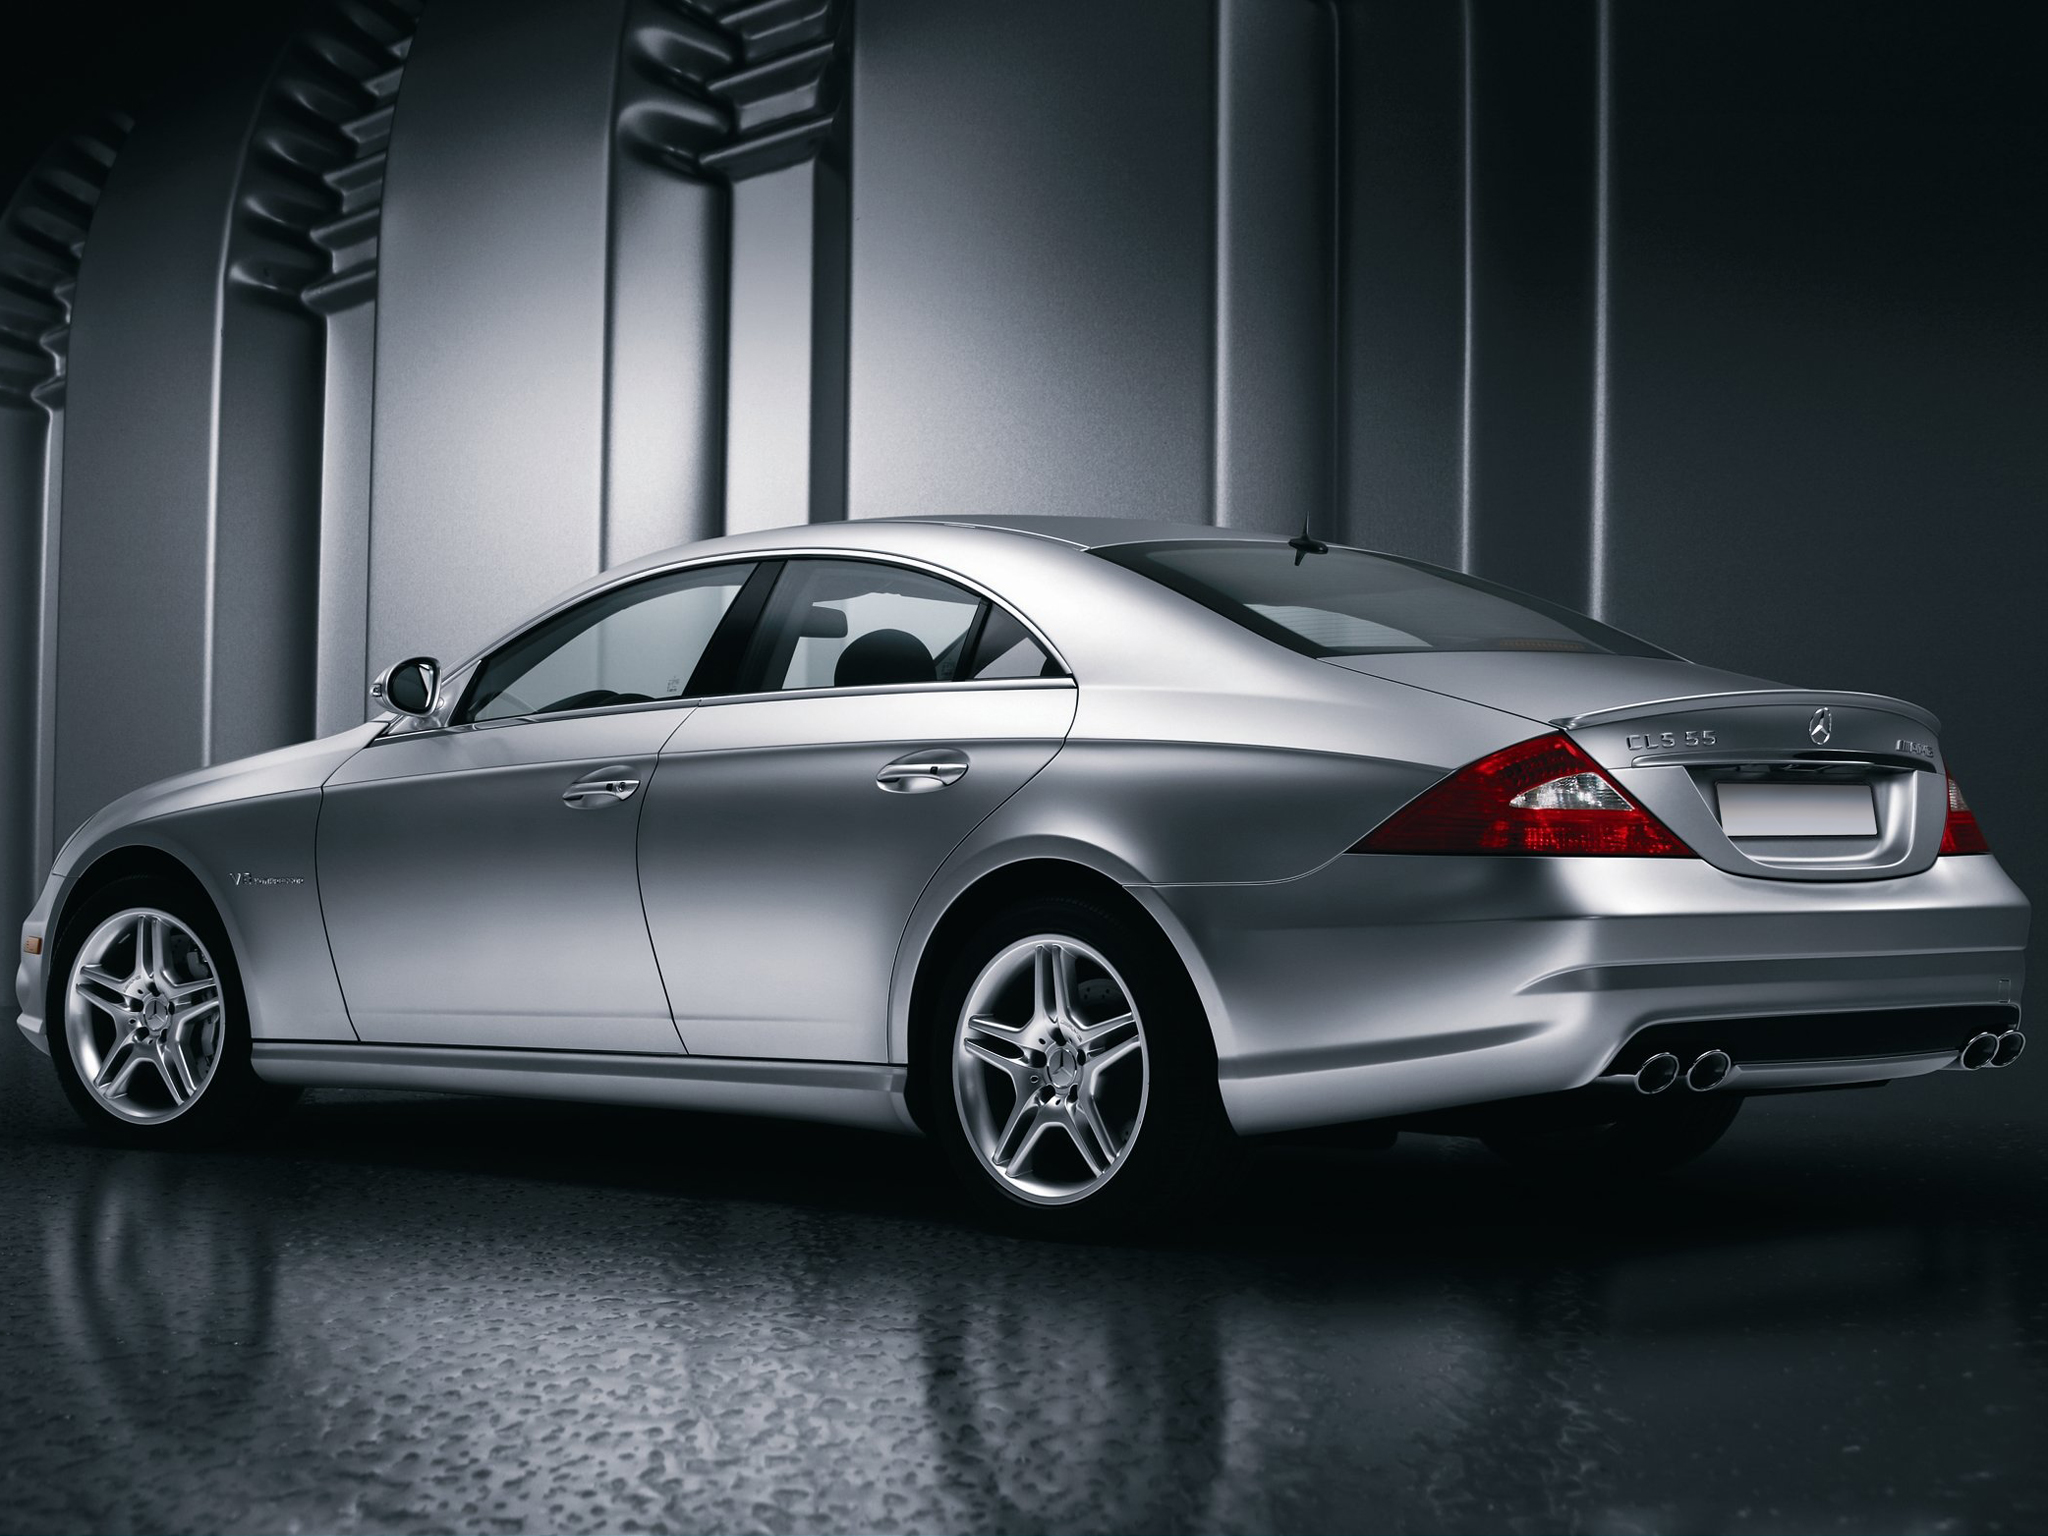 daily wallpaper mercedes benz cls 55 amg i like to waste my time. Black Bedroom Furniture Sets. Home Design Ideas